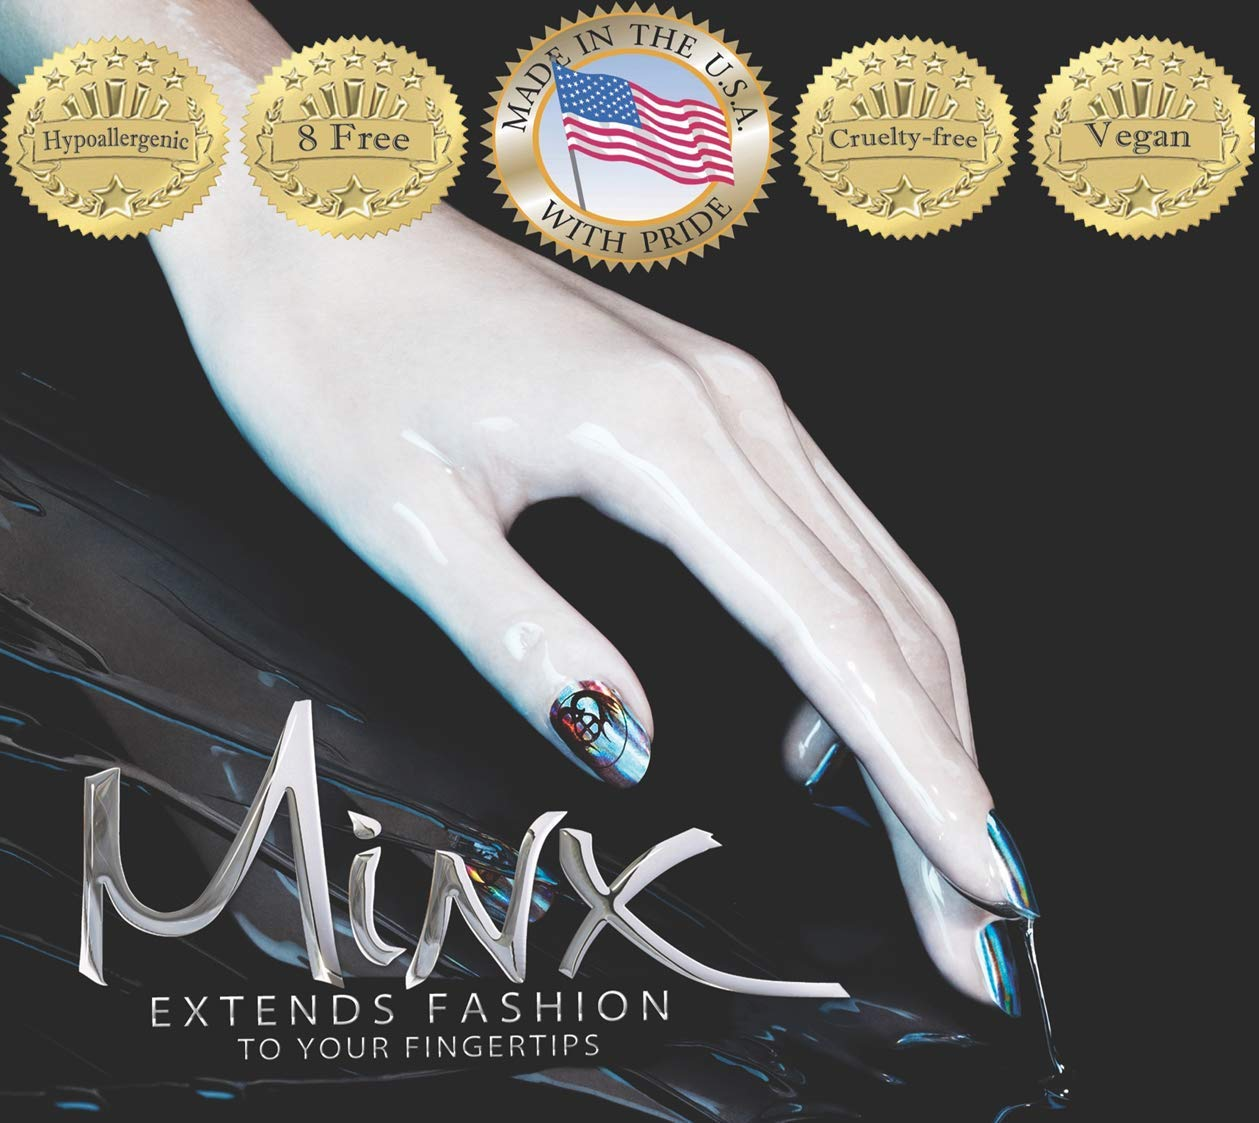 MINX Snake Me Away Nail Wraps by Minx